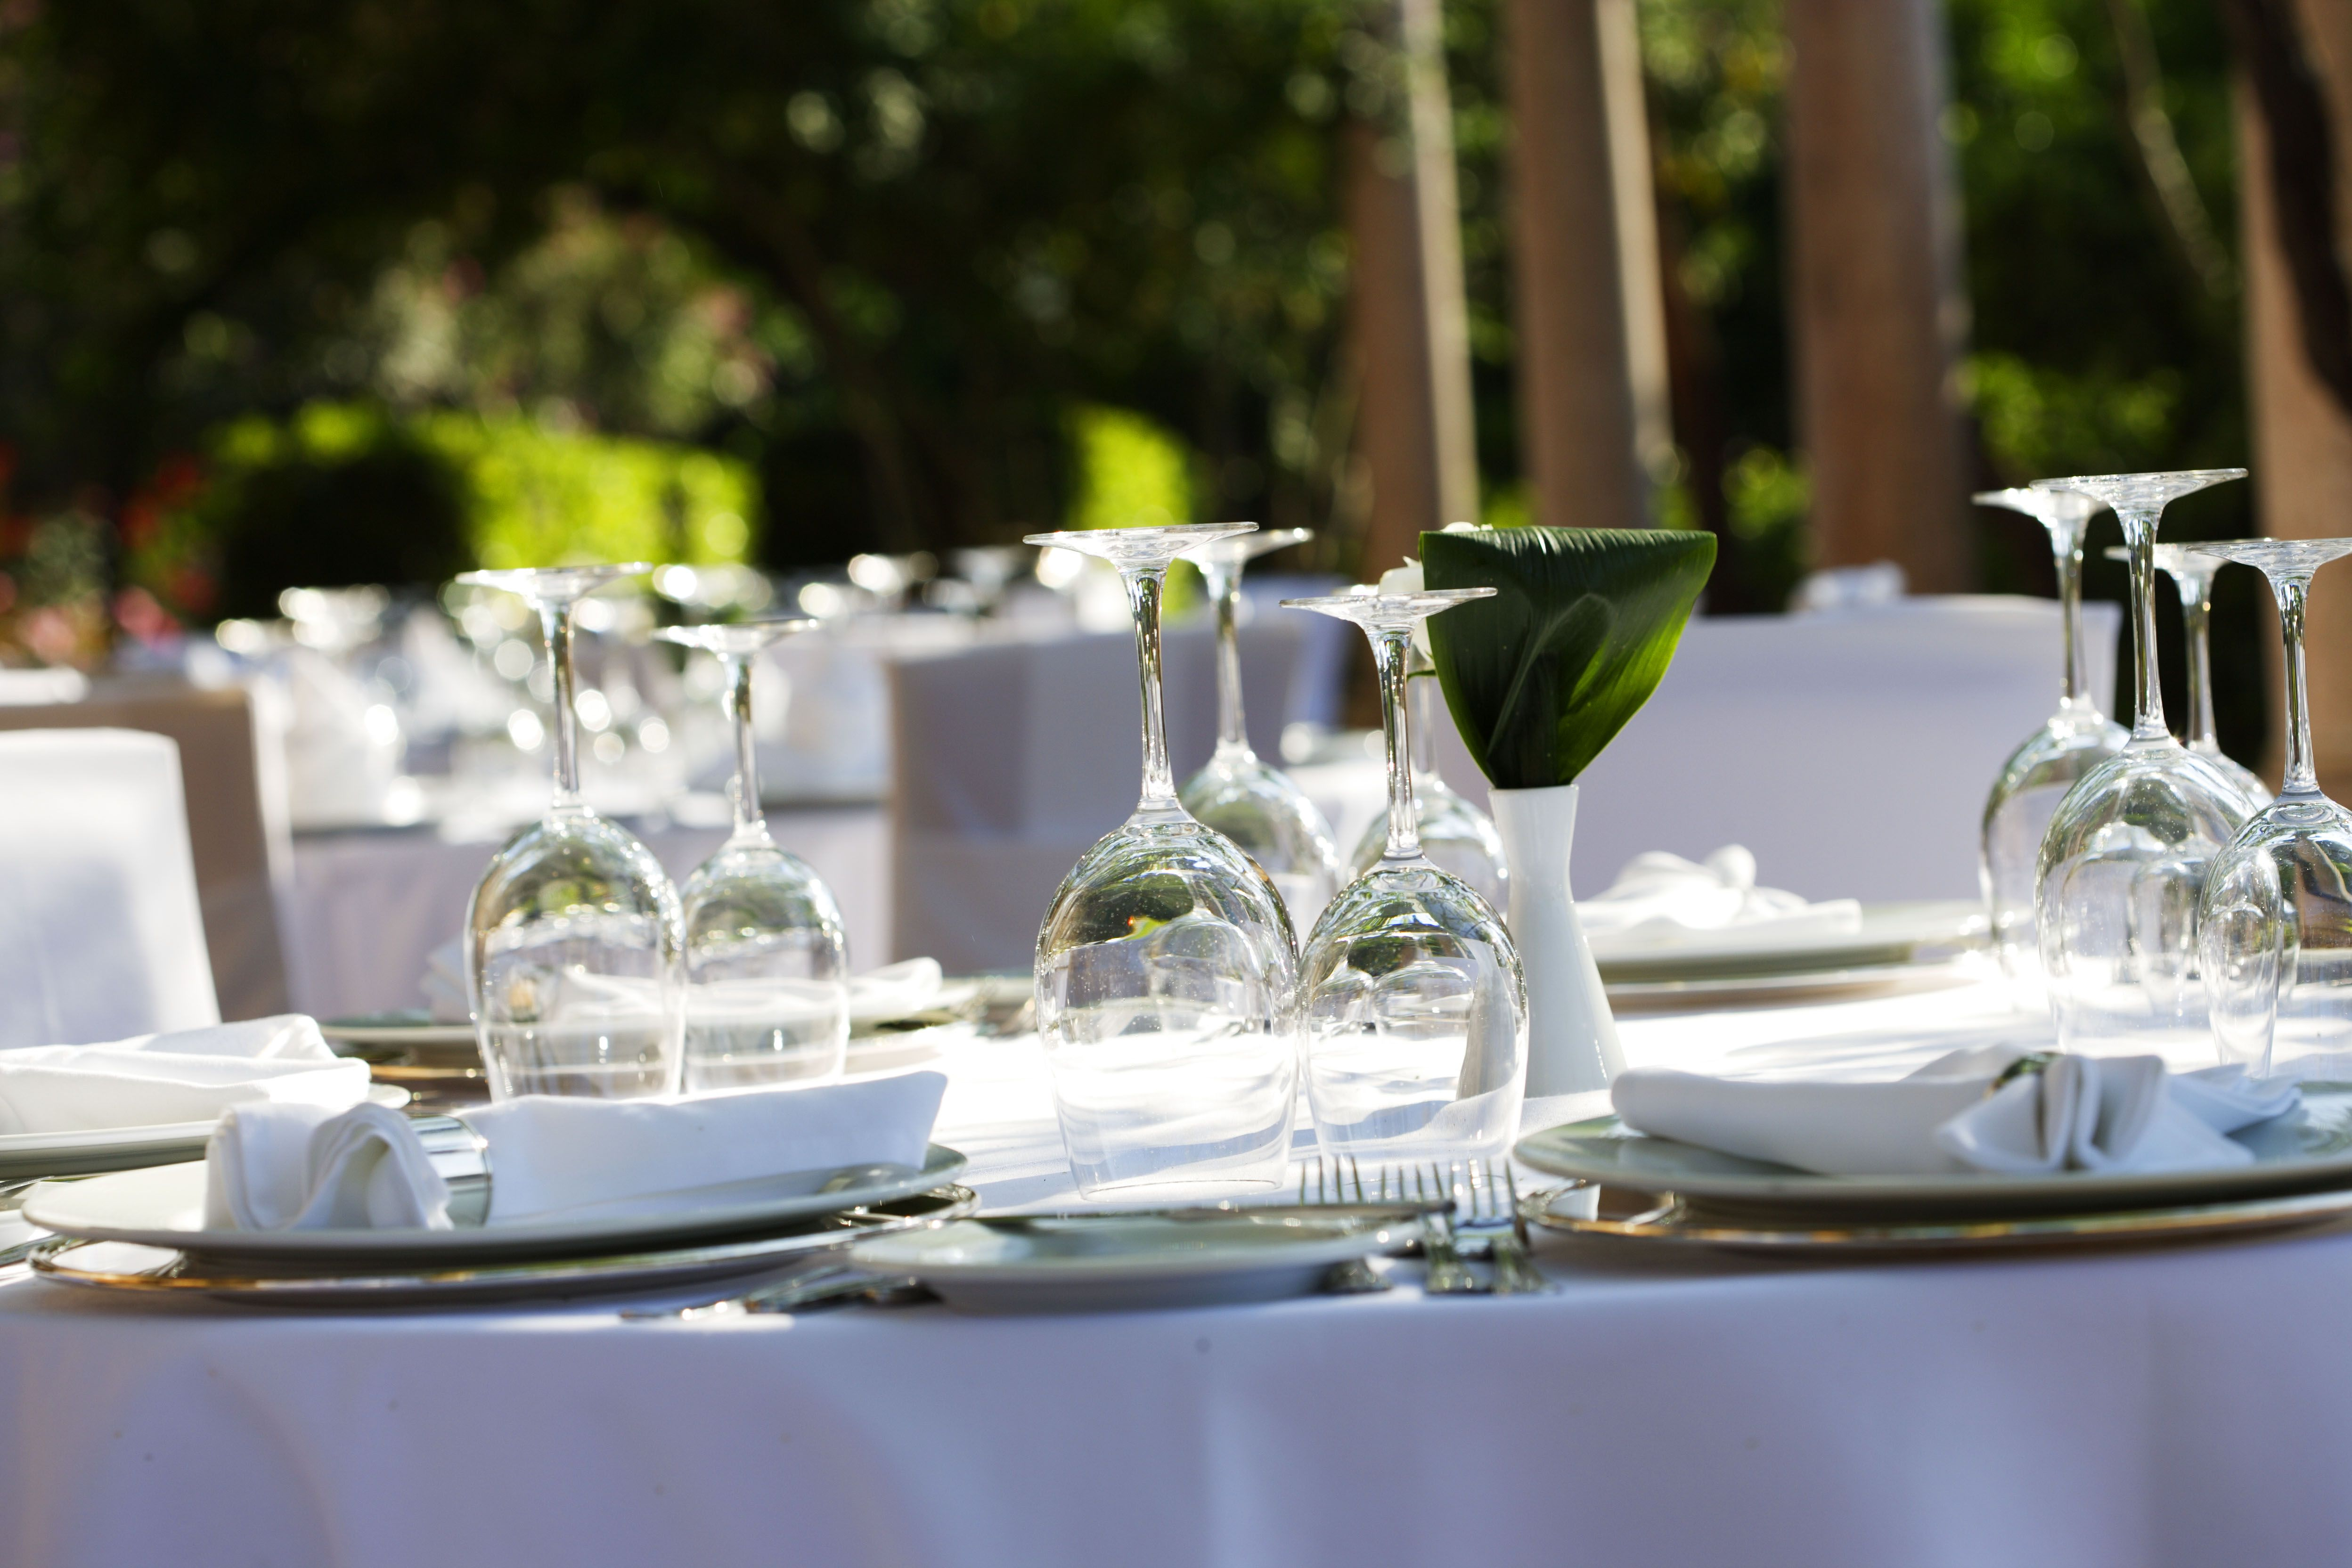 Garden wedding in Greece. Simple stunning decorations for the reception table...